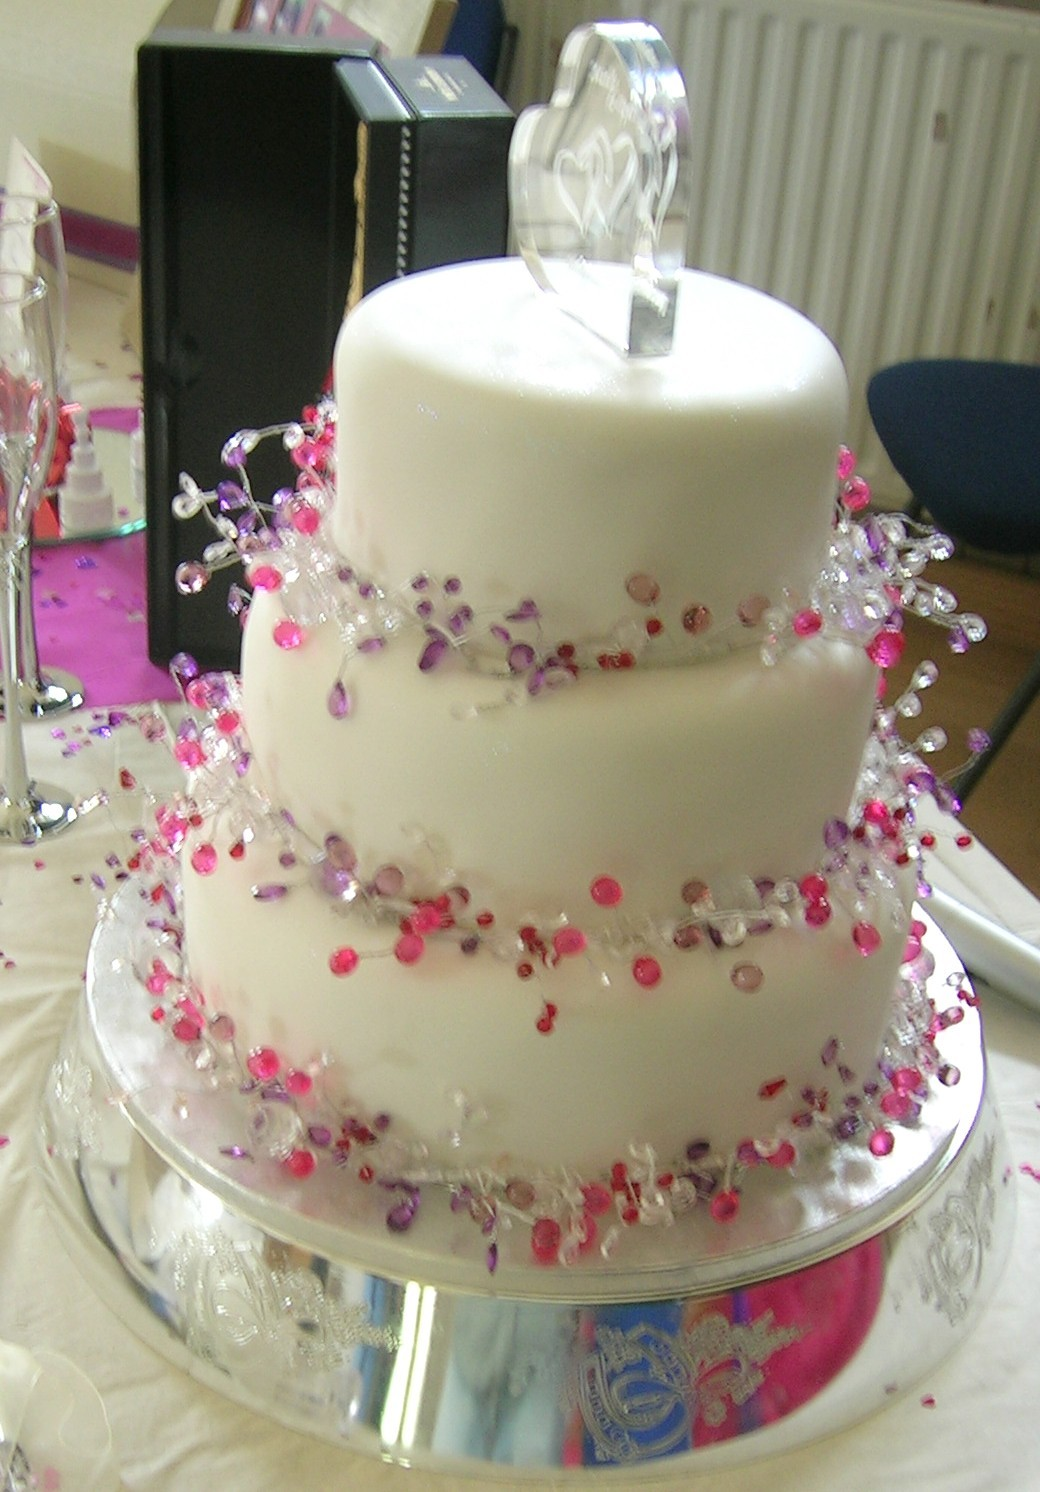 Cake Design Decoration : Wedding Pictures Wedding Photos: Wedding Cake Decorating ...